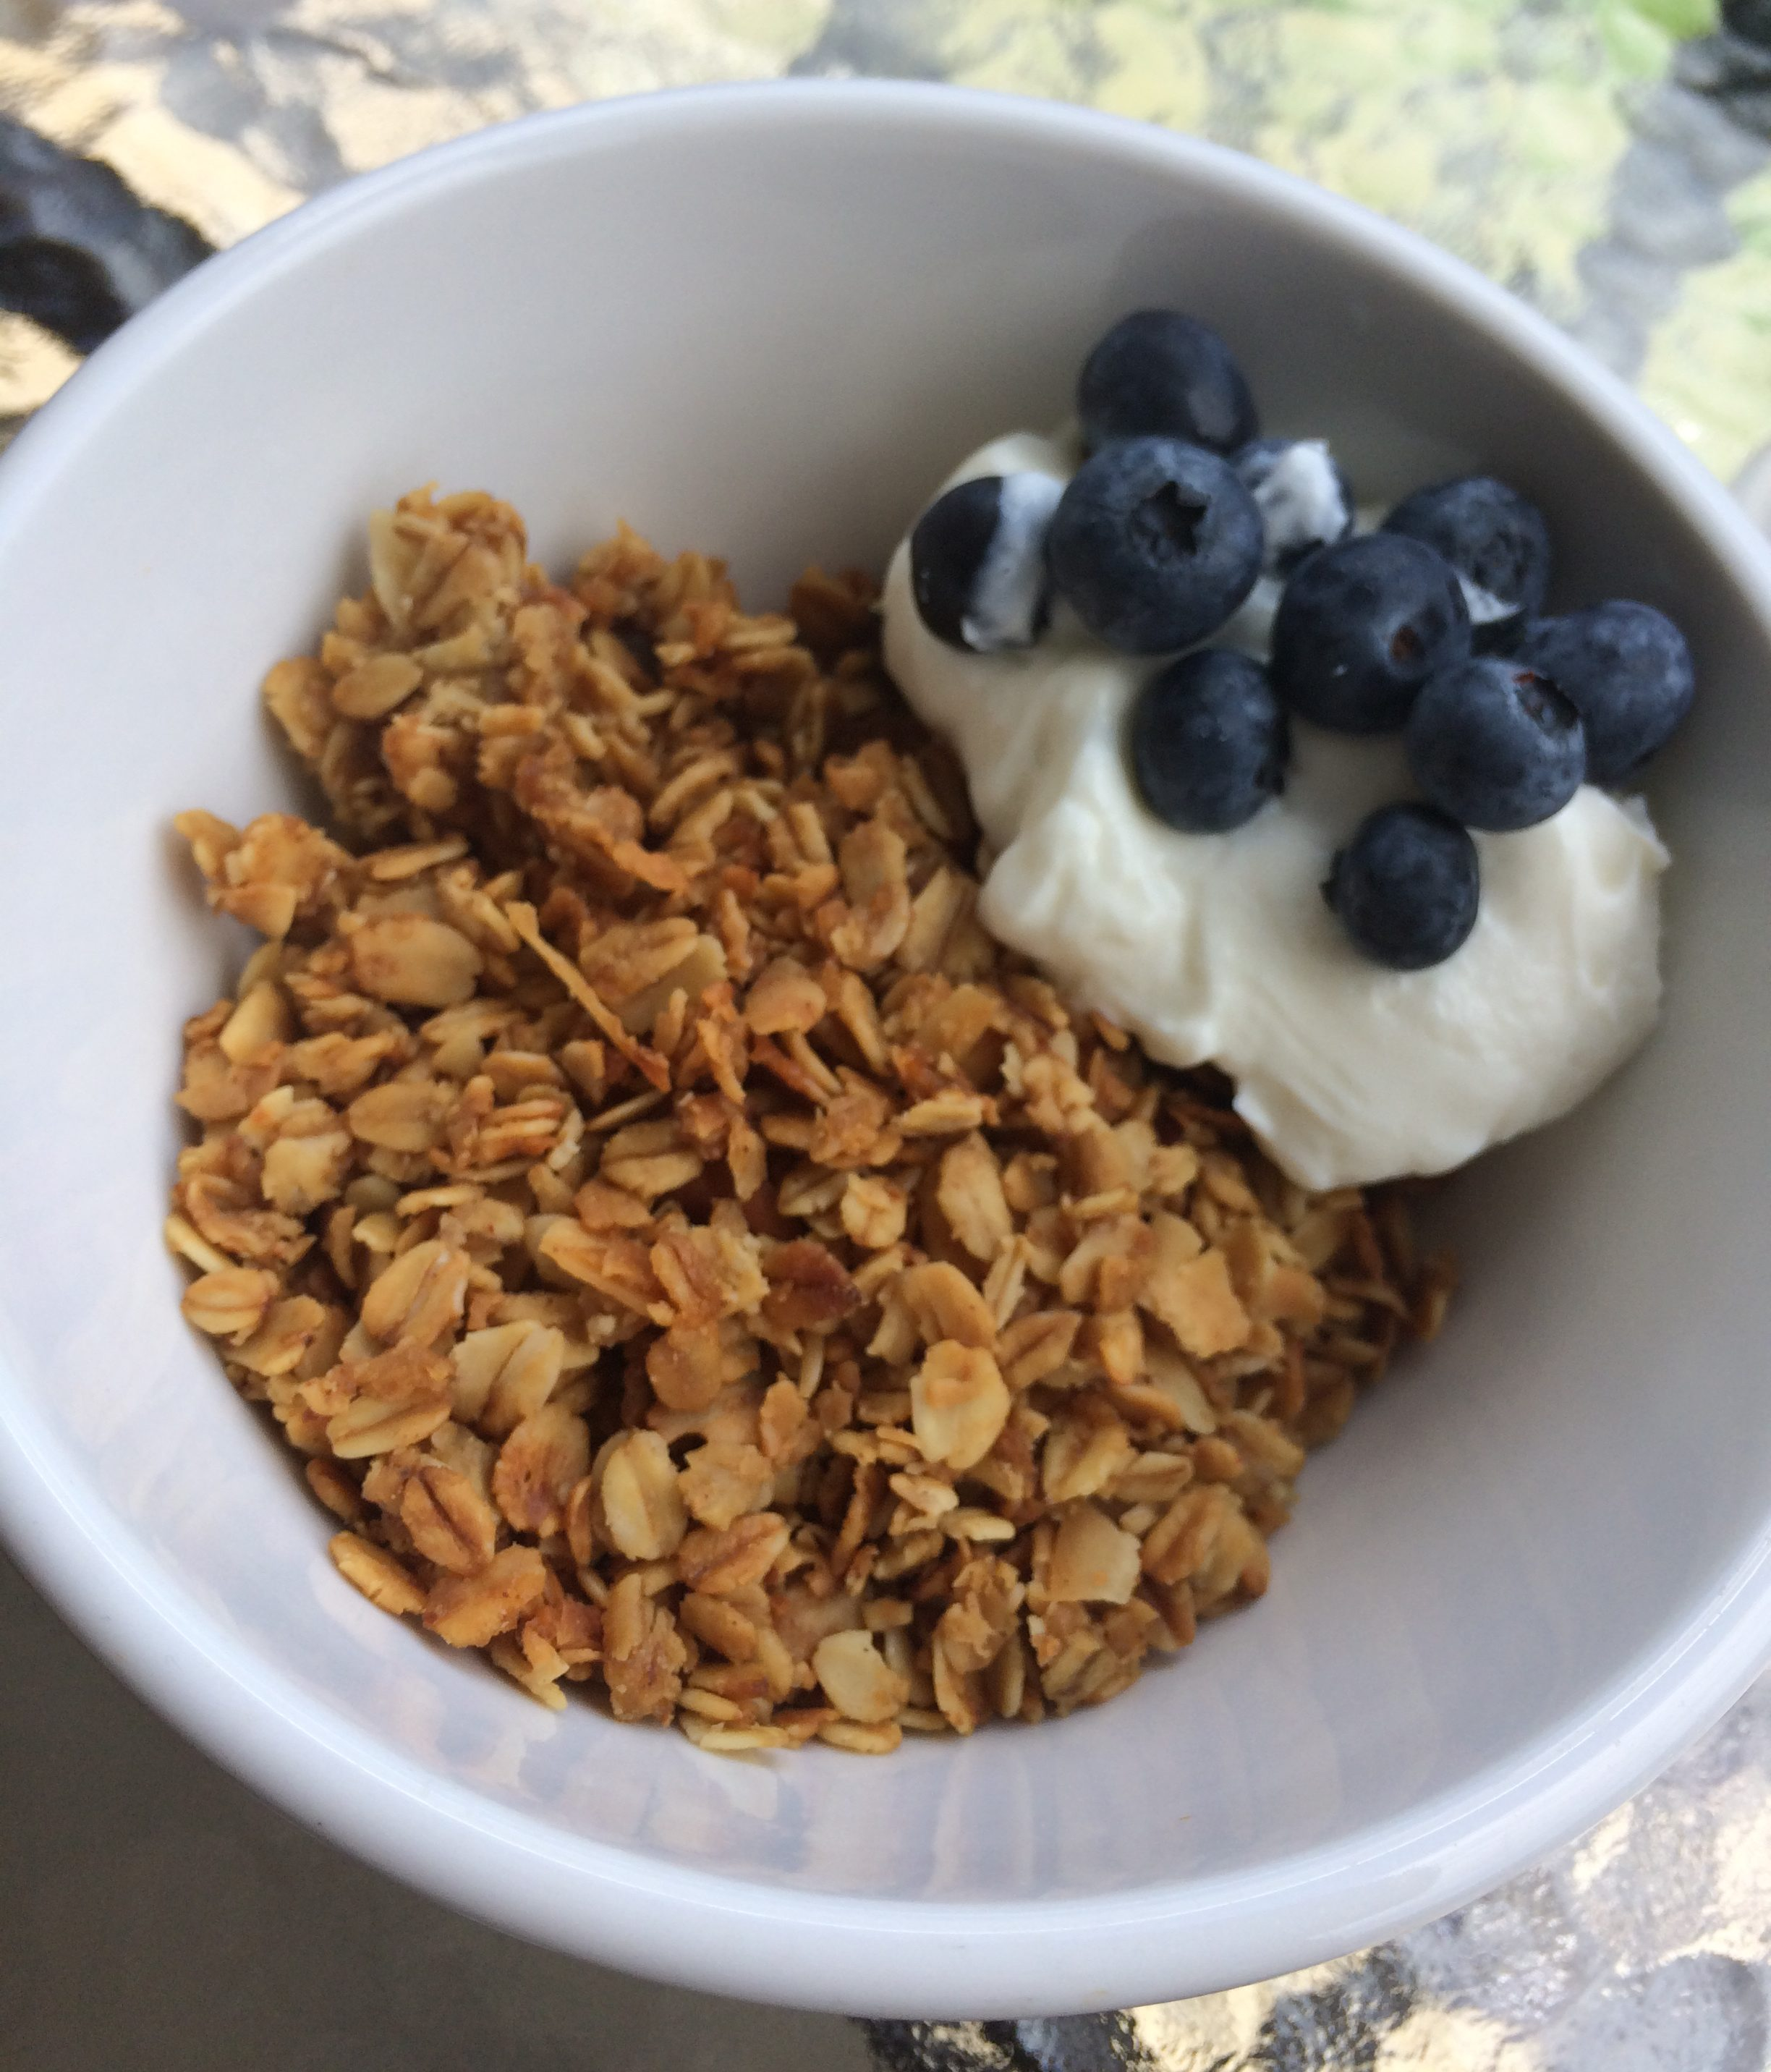 Granola how to make your own journey boost standing in the cereal aisle of any major food store can be an overwhelming perplexing experience especially for those of us who aim to choose healthy ccuart Images